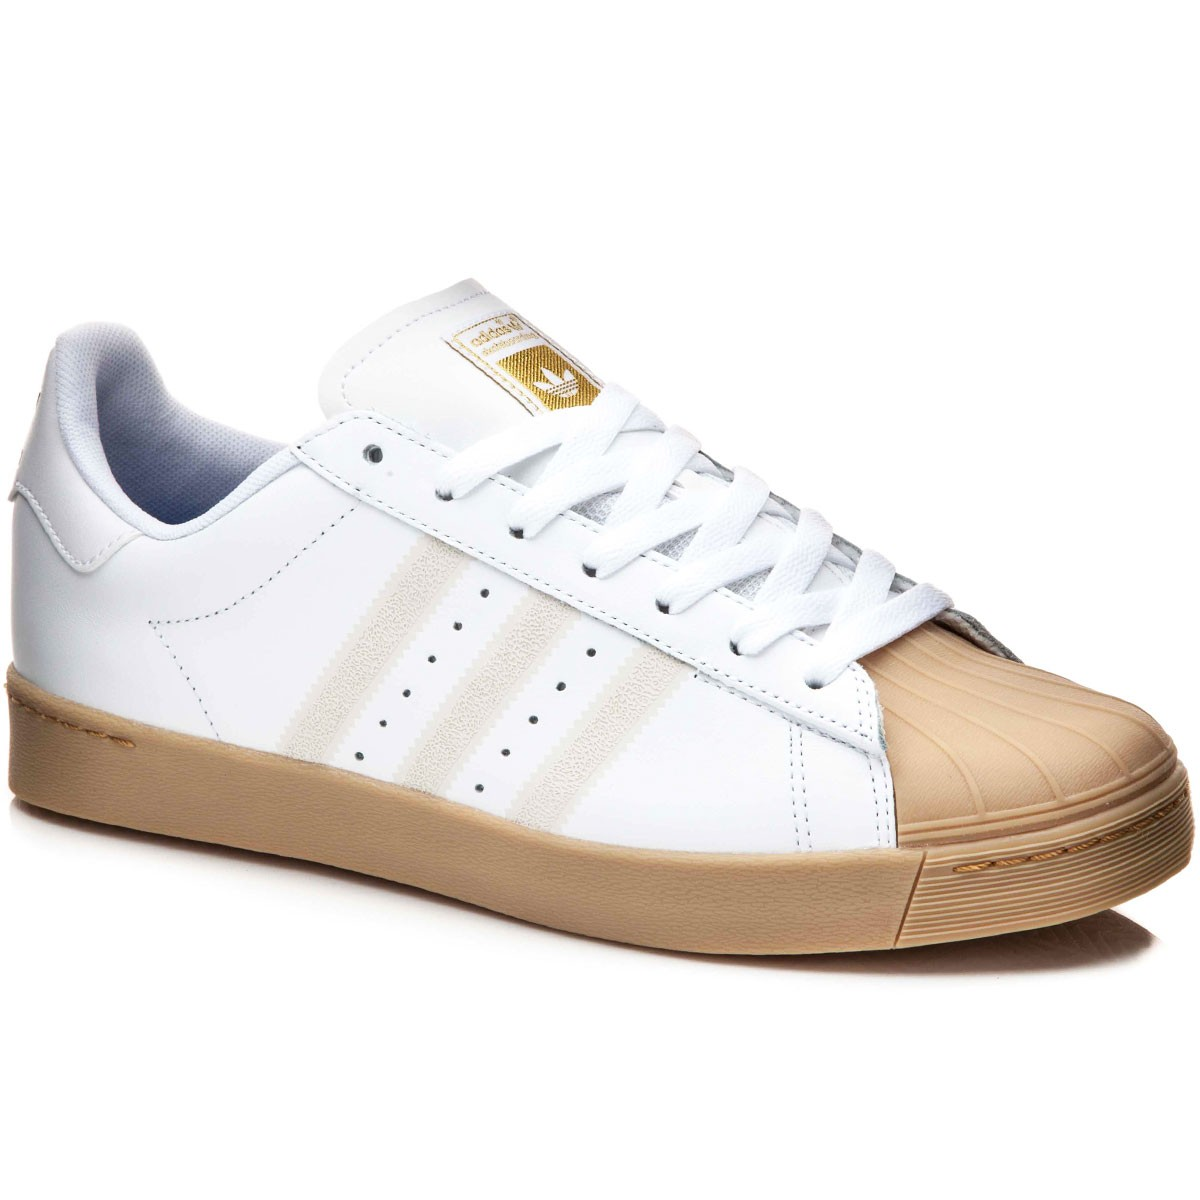 Cheap Adidas Originals Superstar adicolor Shoes Casual Sporting Sil